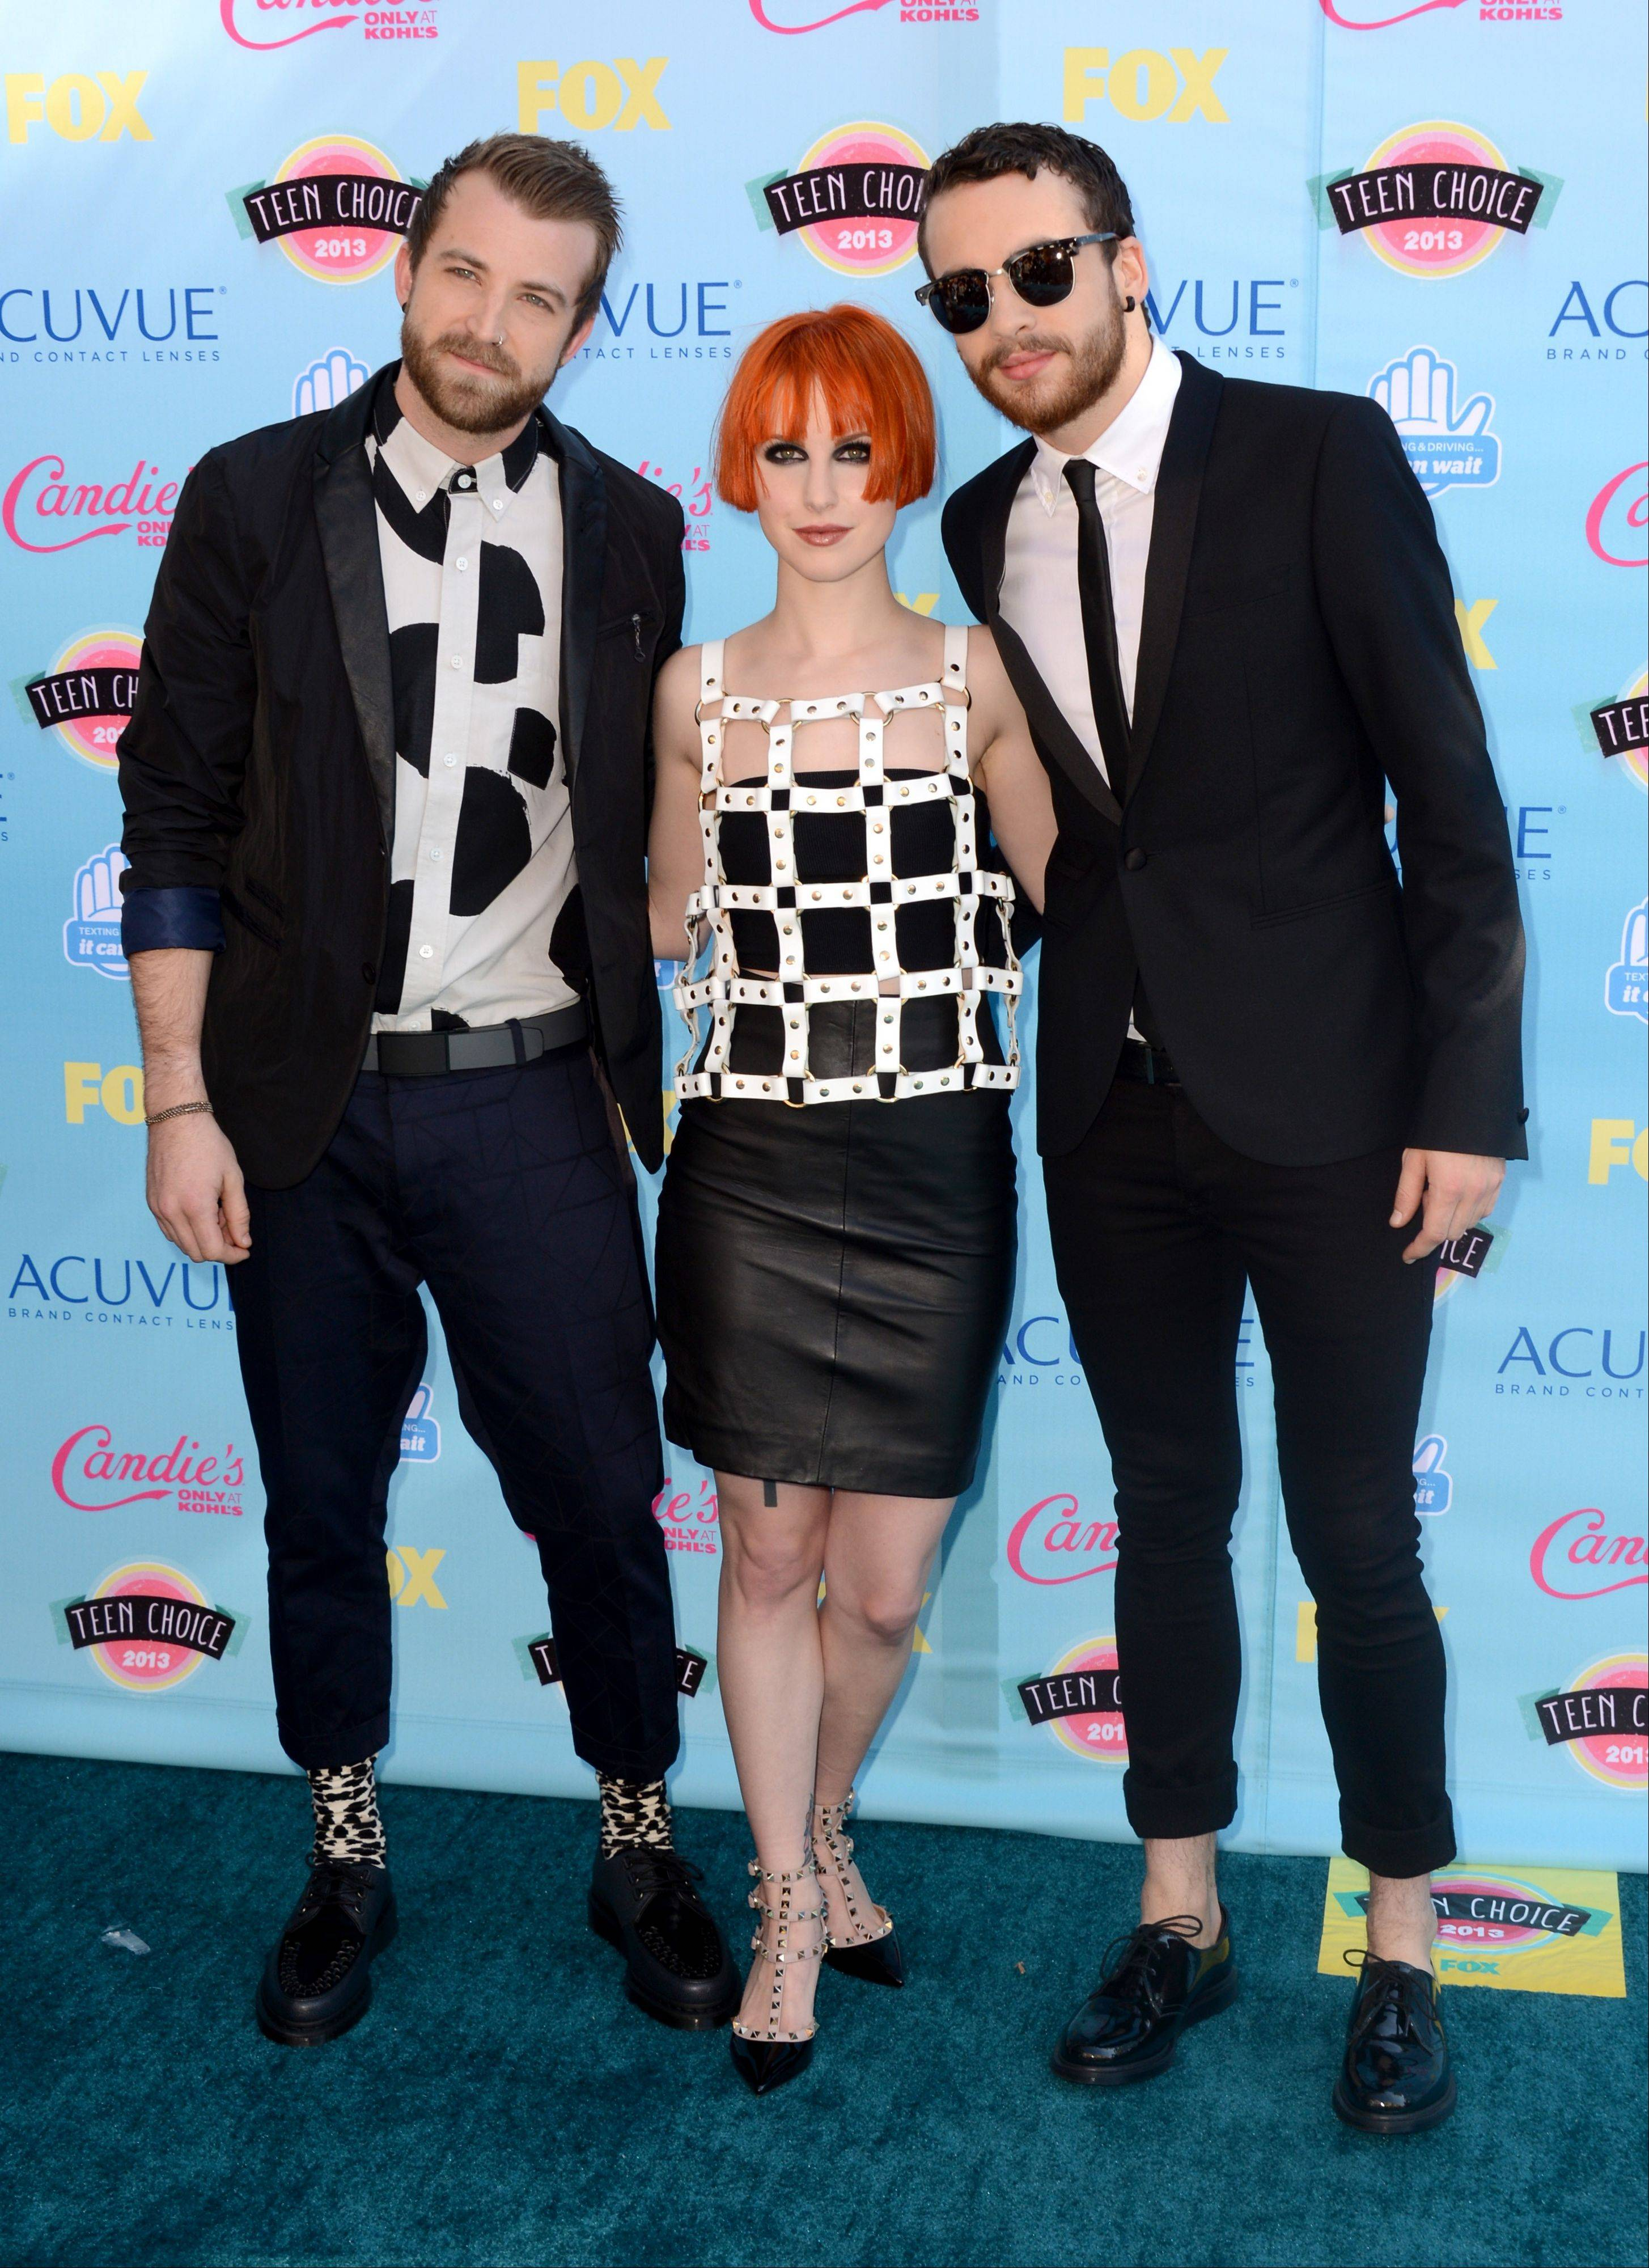 Jeremy Davis, from left, Hayley Williams and Taylor York of the musical group Paramore arrive at the Teen Choice Awards at the Gibson Amphitheater.